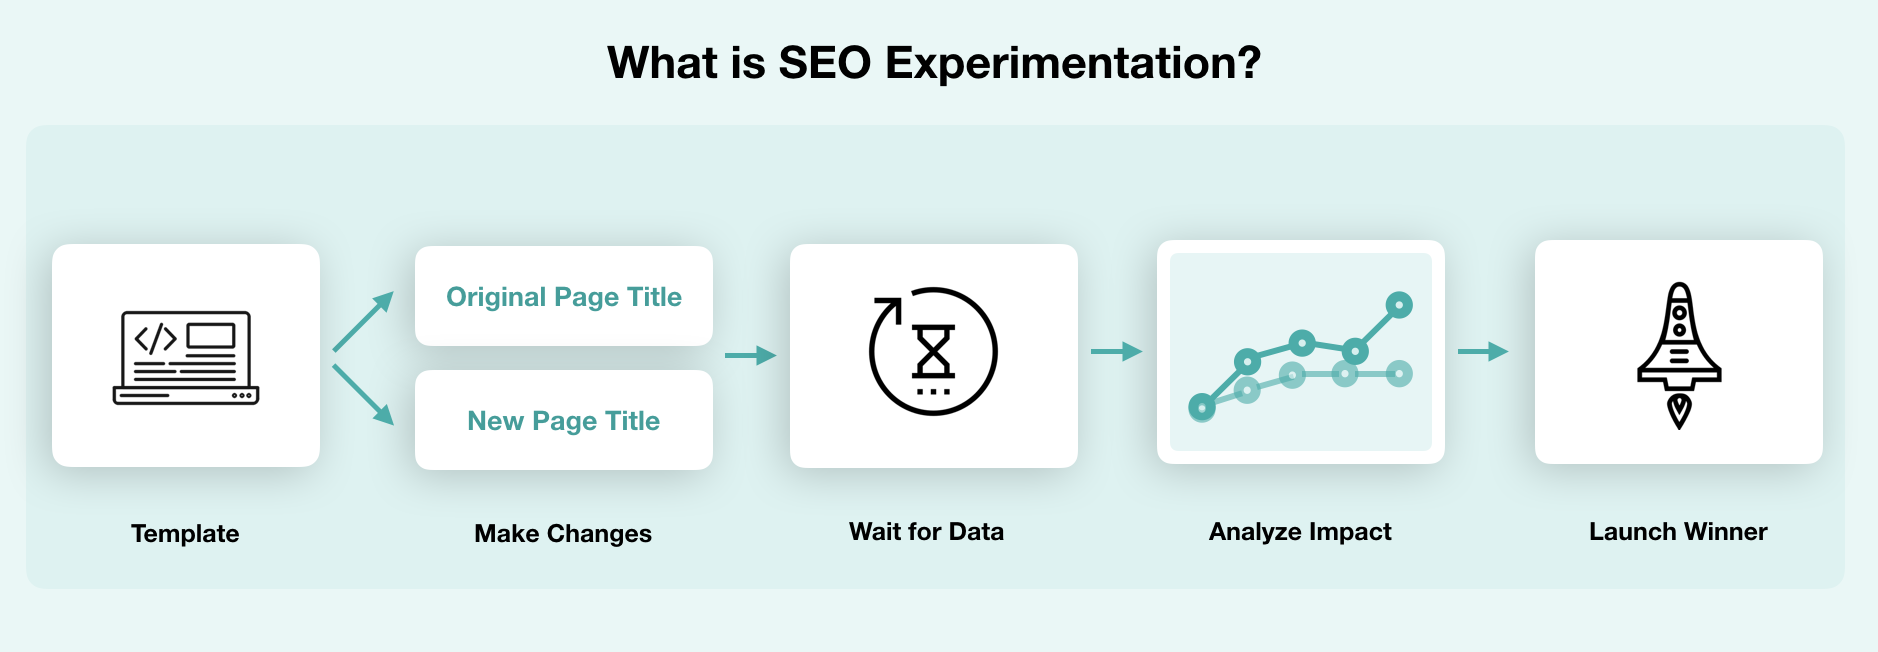 Explaining SEO Experimentation